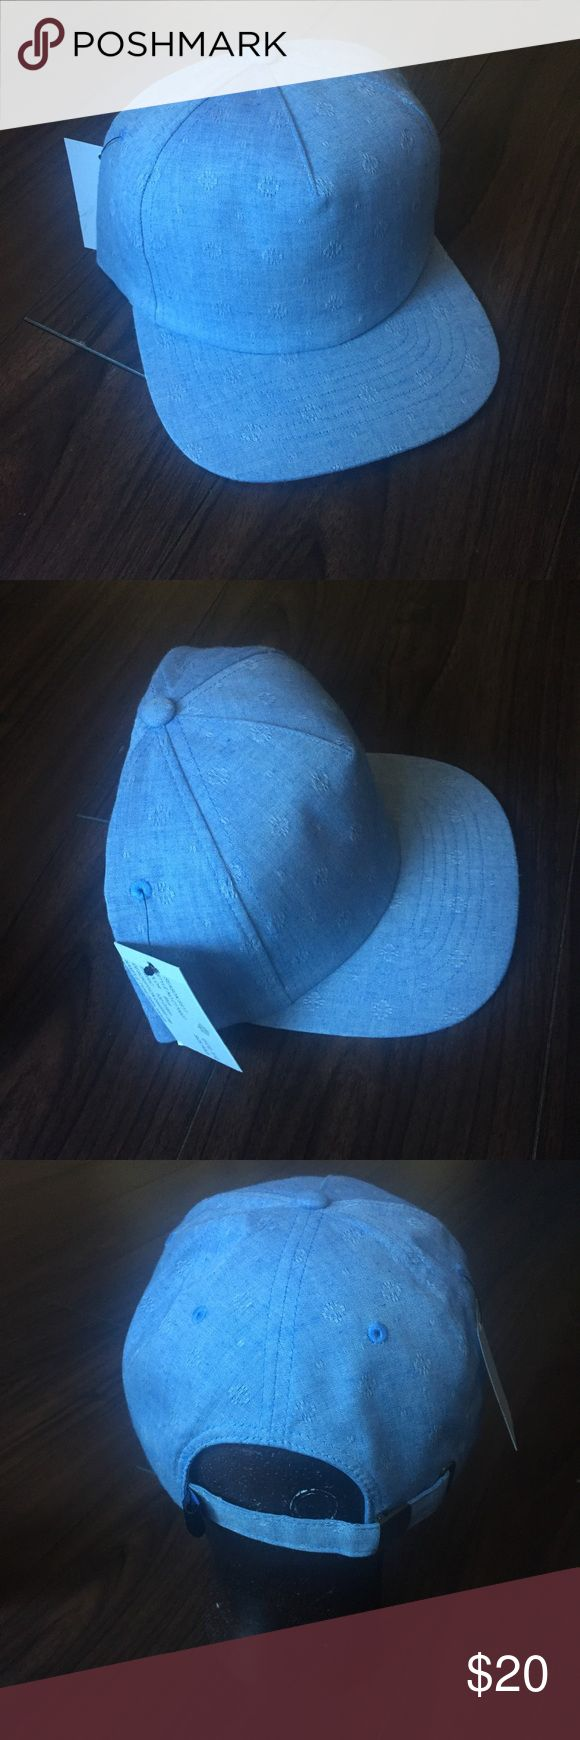 Light Blue Baseball Cap Light Blue Street Wear Baseball Hat! Fully adjustable and on trend ✌️️ not PacSun - tagged for exposure and good vibes! Beautiful Giant/Oaks brand! High quality and ready to rock for spring/summer! PacSun Accessories Hats